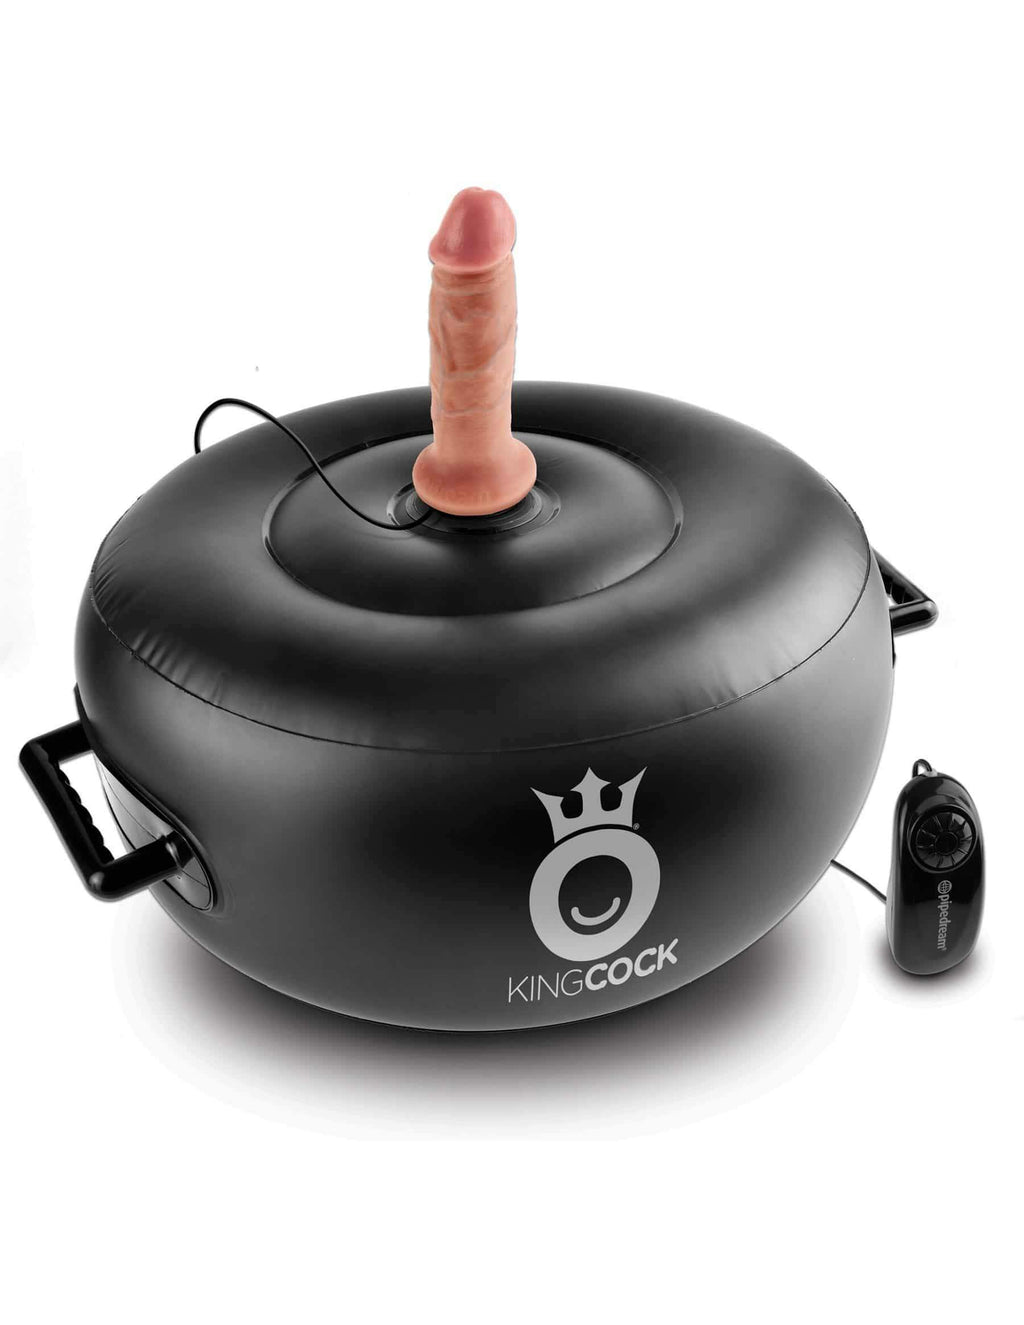 King Cock Inflatable Vibrating seat rodeo ride with 2 x King Cocks-bounce your way to climax